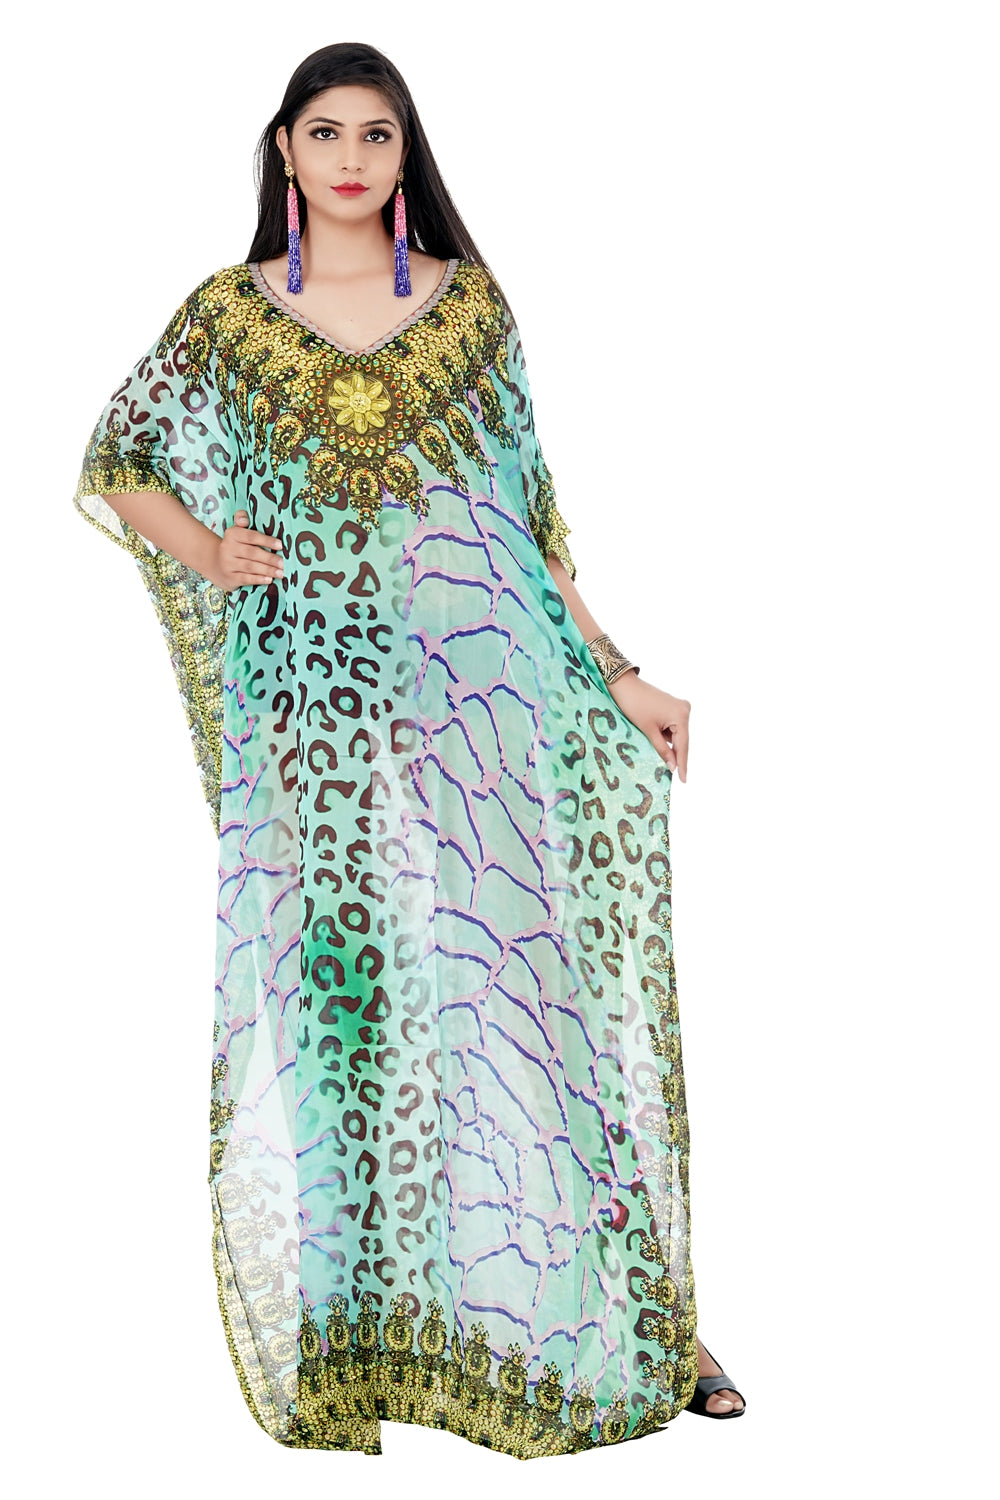 Grandiose Free size Silk Kaftan revealing Leopard Fur with crystal embellishment